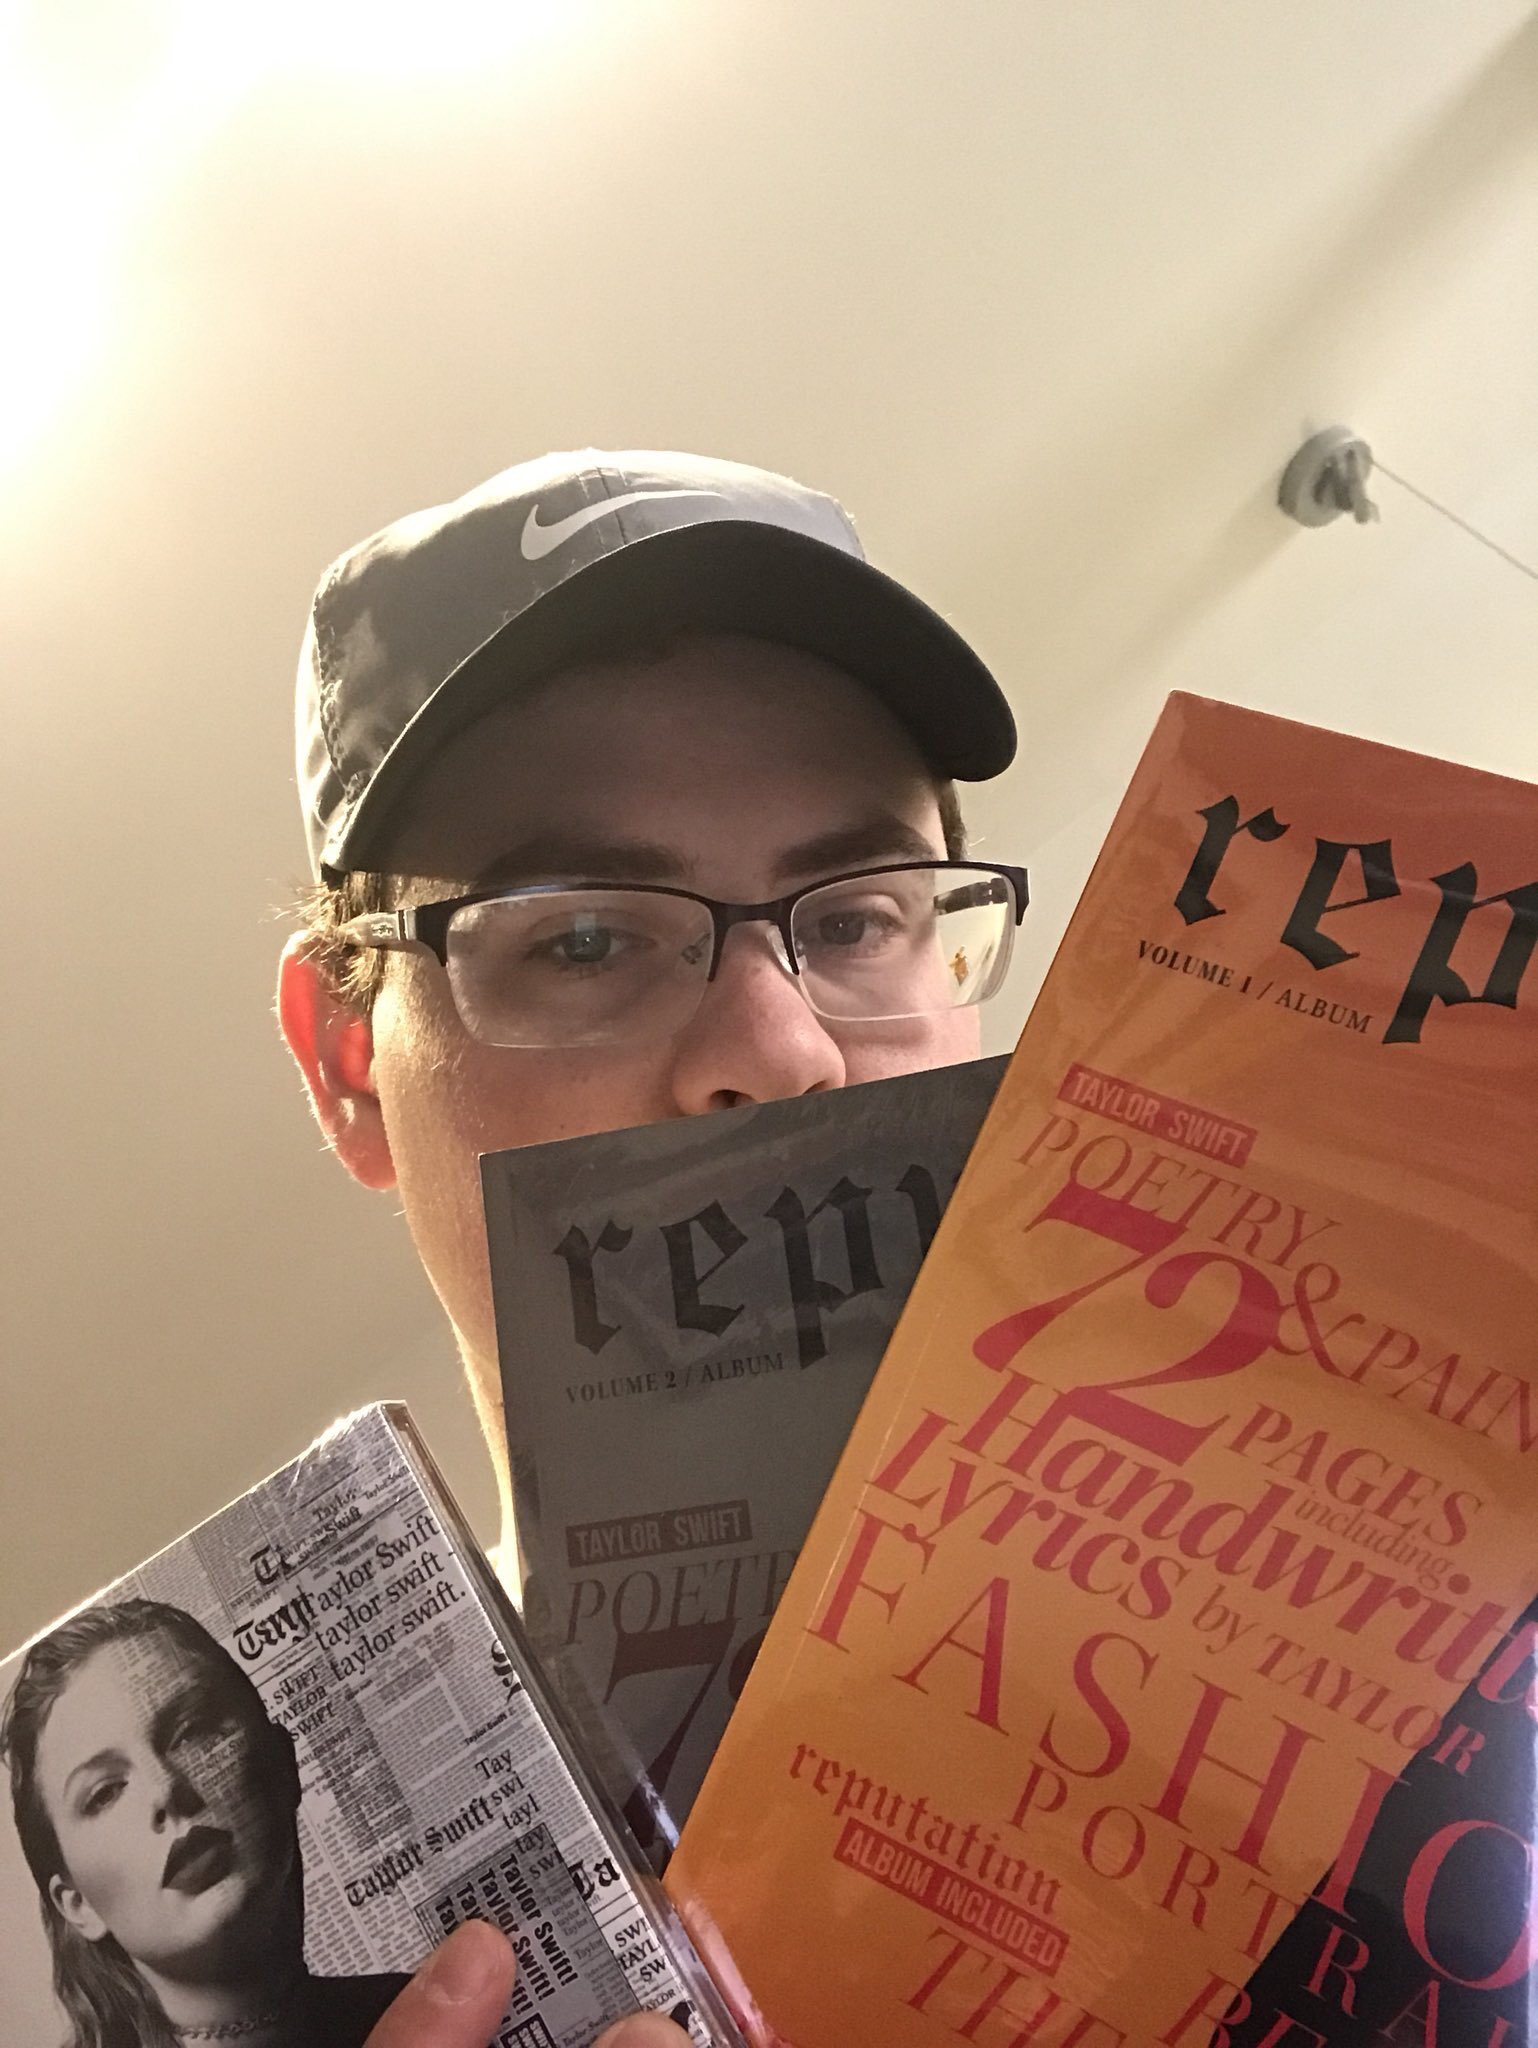 #reputaylurking #reputation ❤️ https://t.co/2OV2DvvIyN